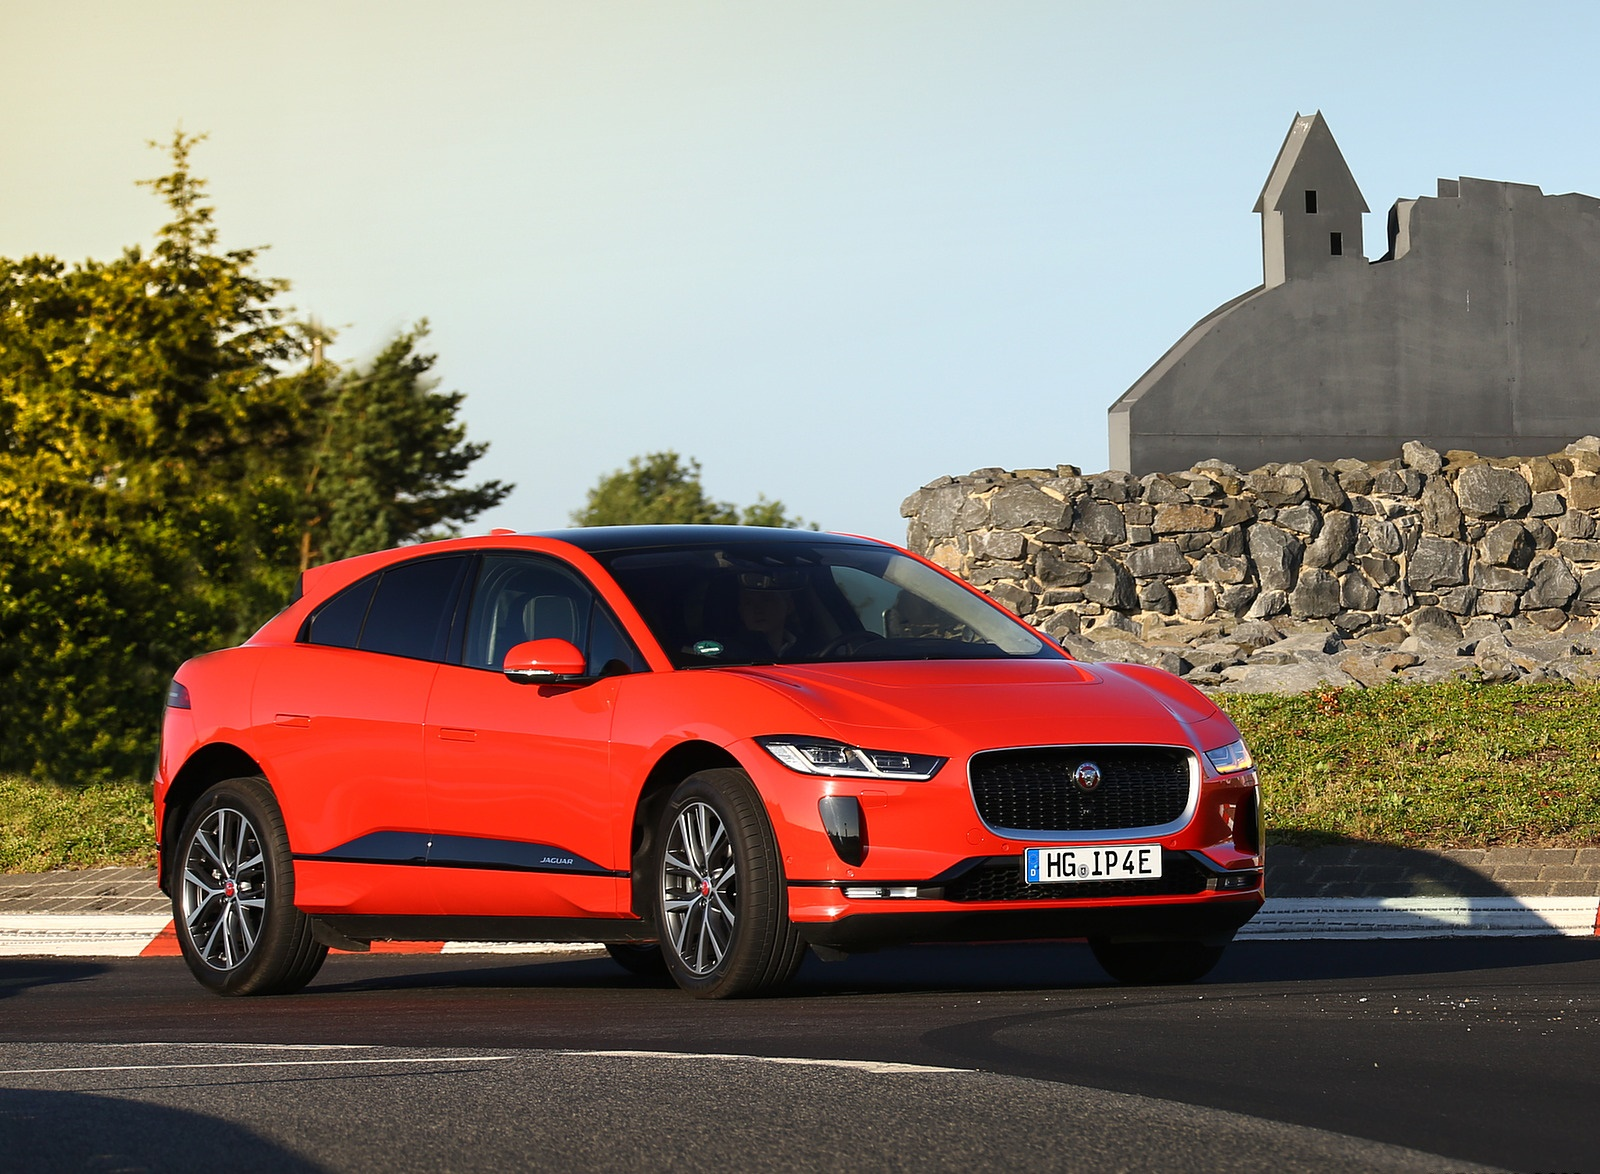 2019 Jaguar I-PACE EV400 AWD HSE First Edition (Color: Photon Red) Front Three-Quarter Wallpapers #45 of 192